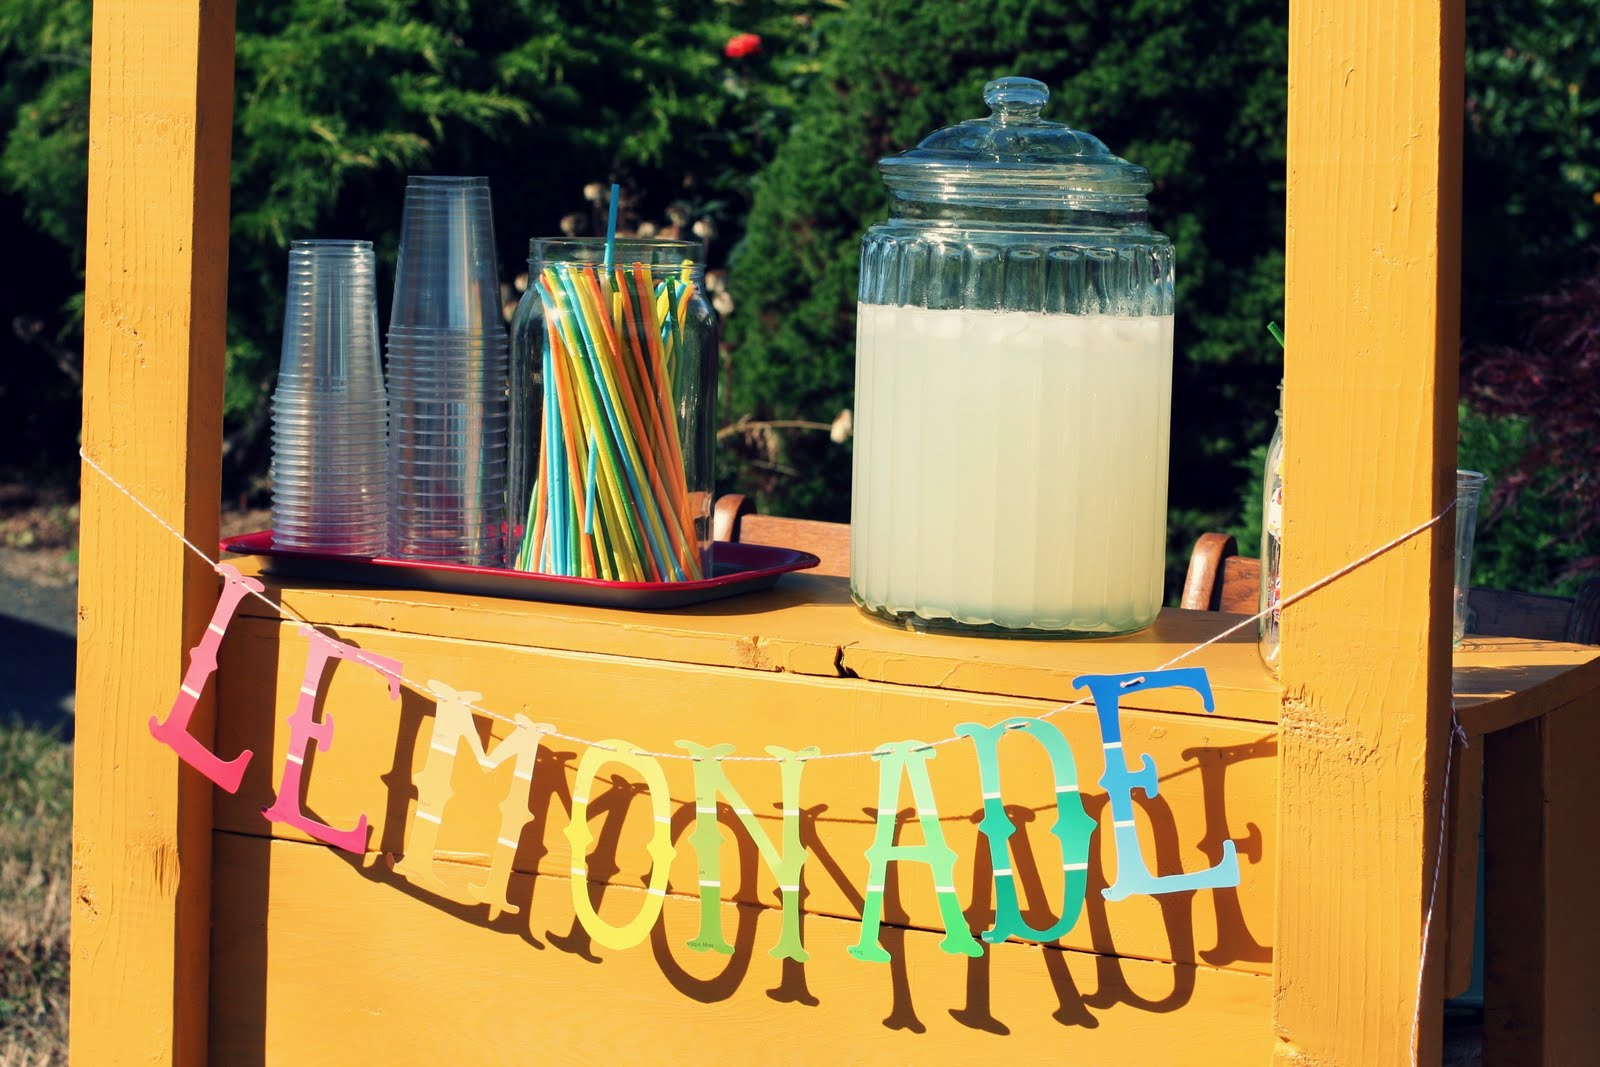 Serve drinks at your Yard Sale to make it look professional